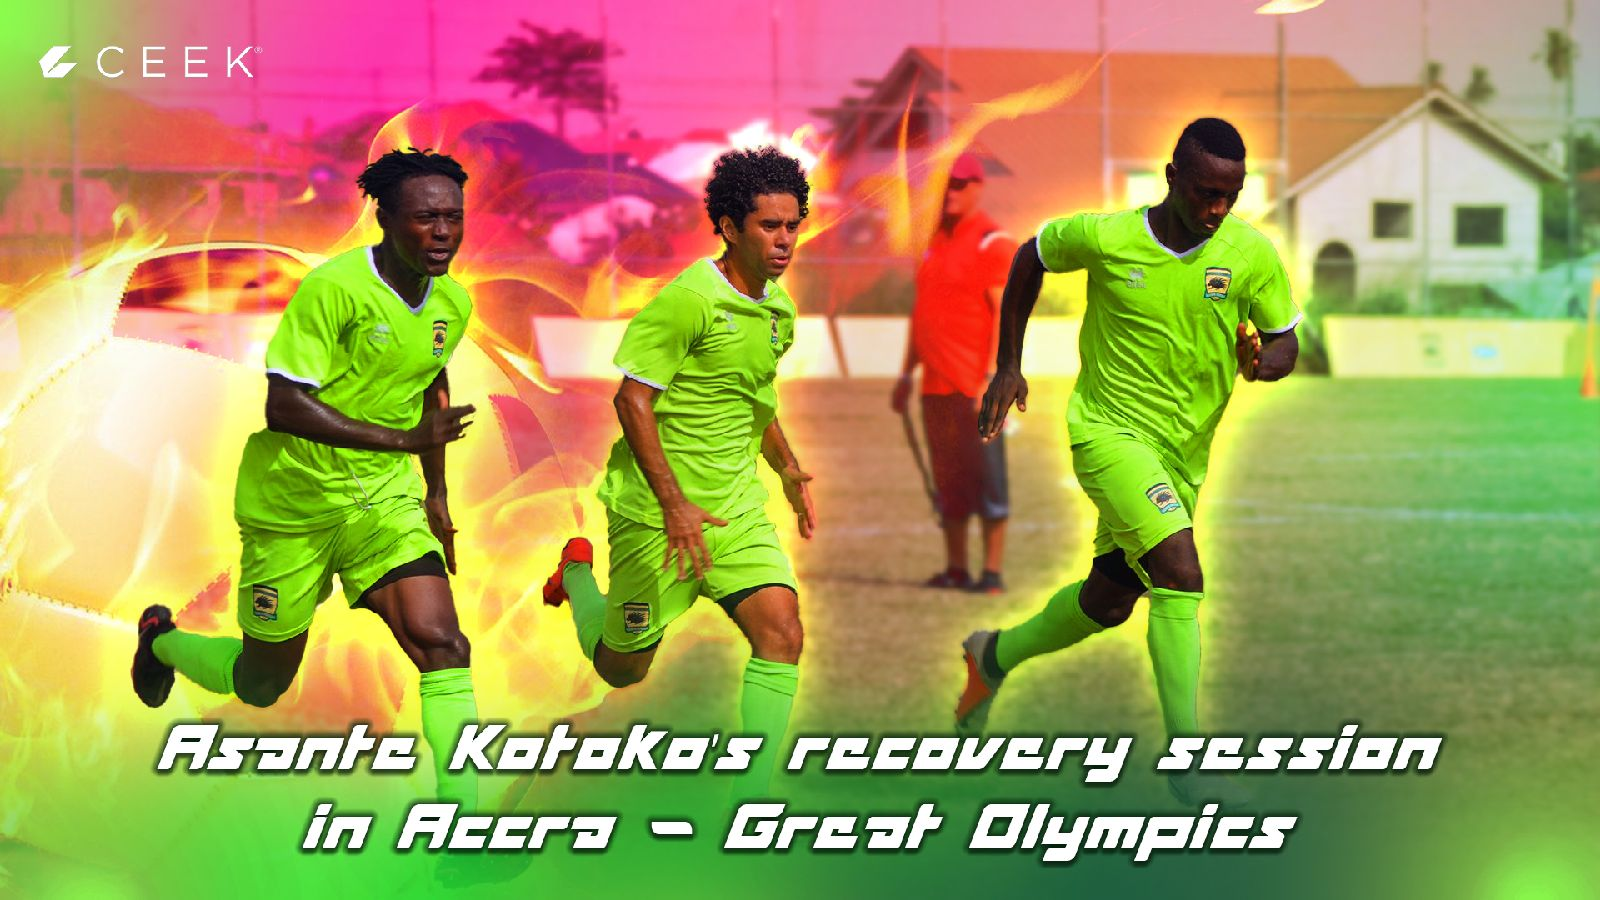 Asante Kotoko's recovery session in Accra | Great Olympics